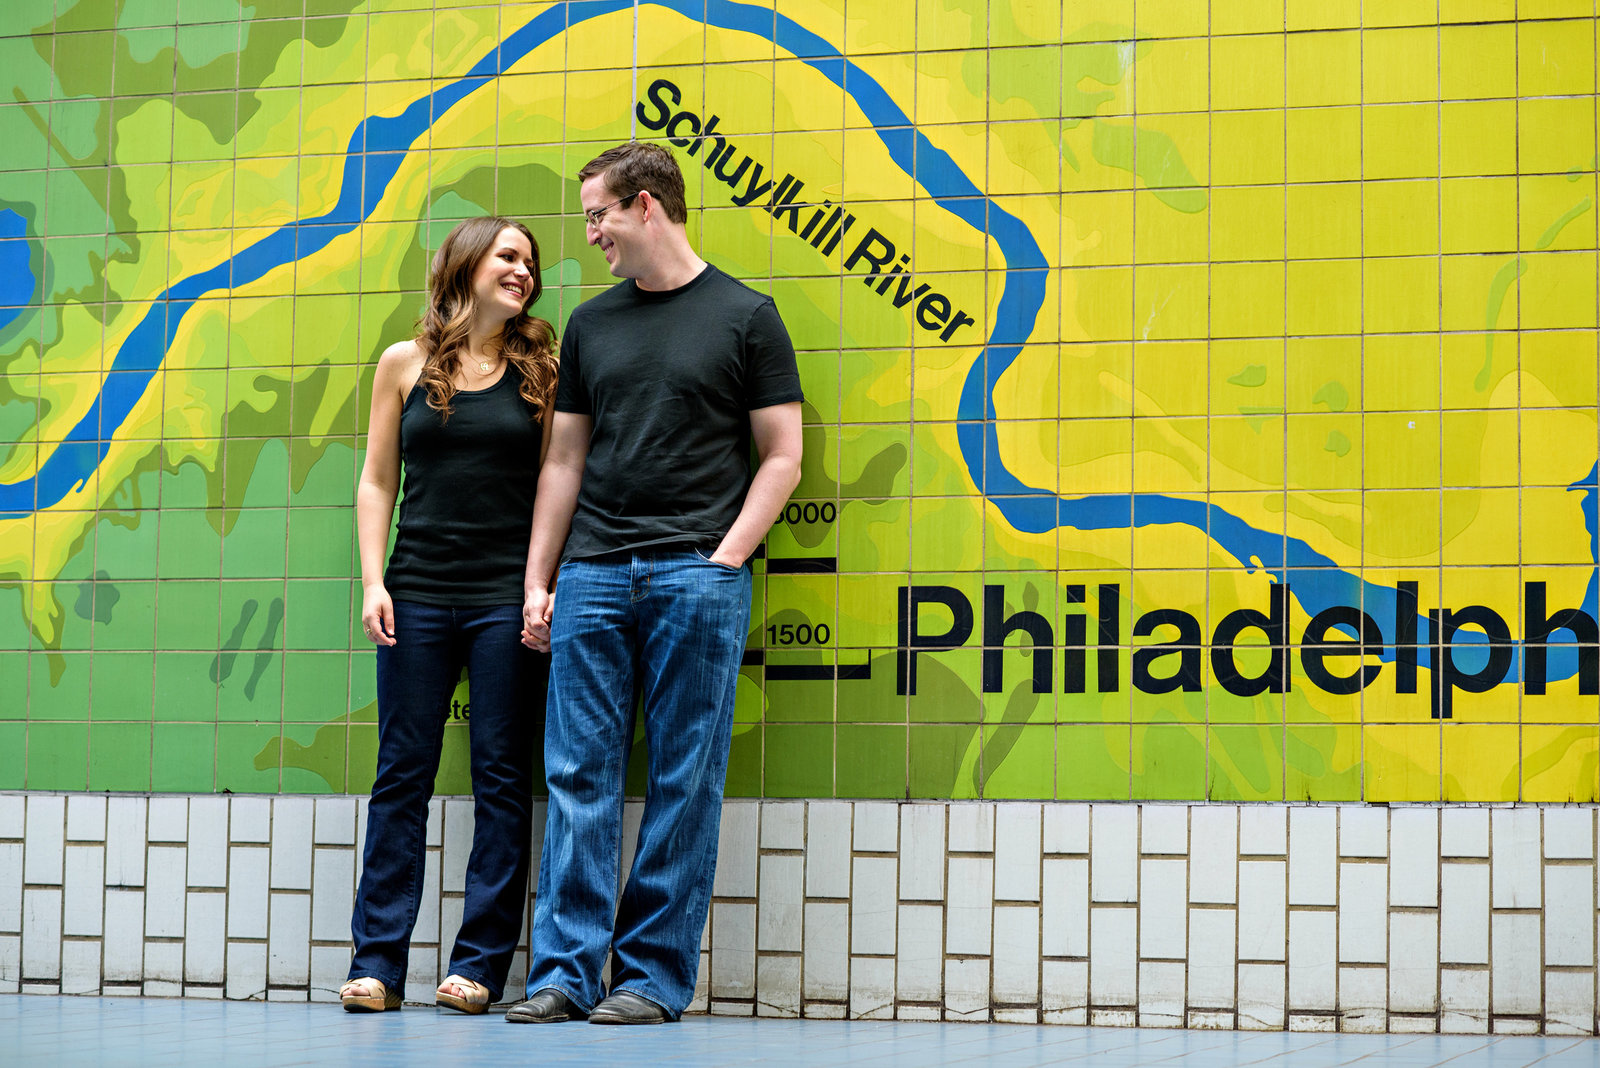 A couple in love in front of a philadelphia mural in the subway.